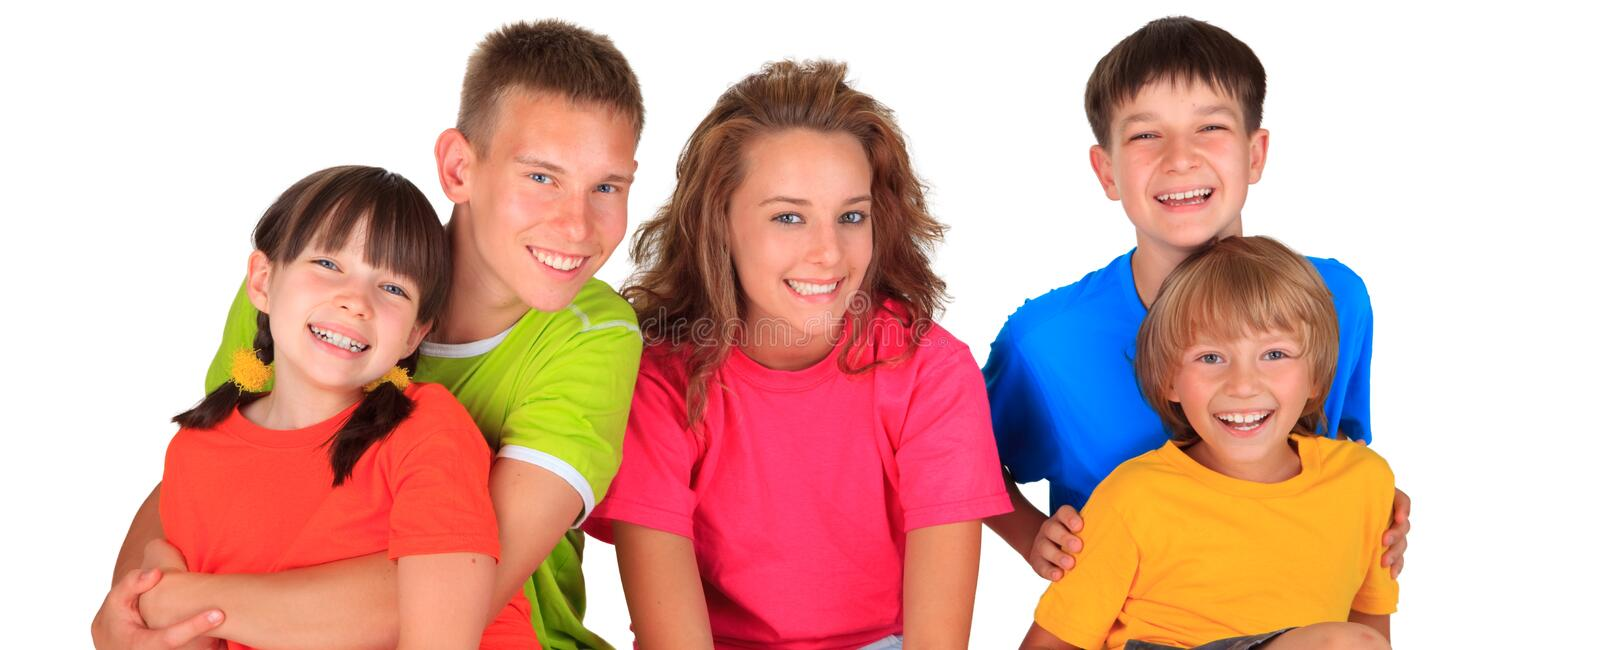 Smiling Group of Children. Happy group of smiling children and teens on white stock photos